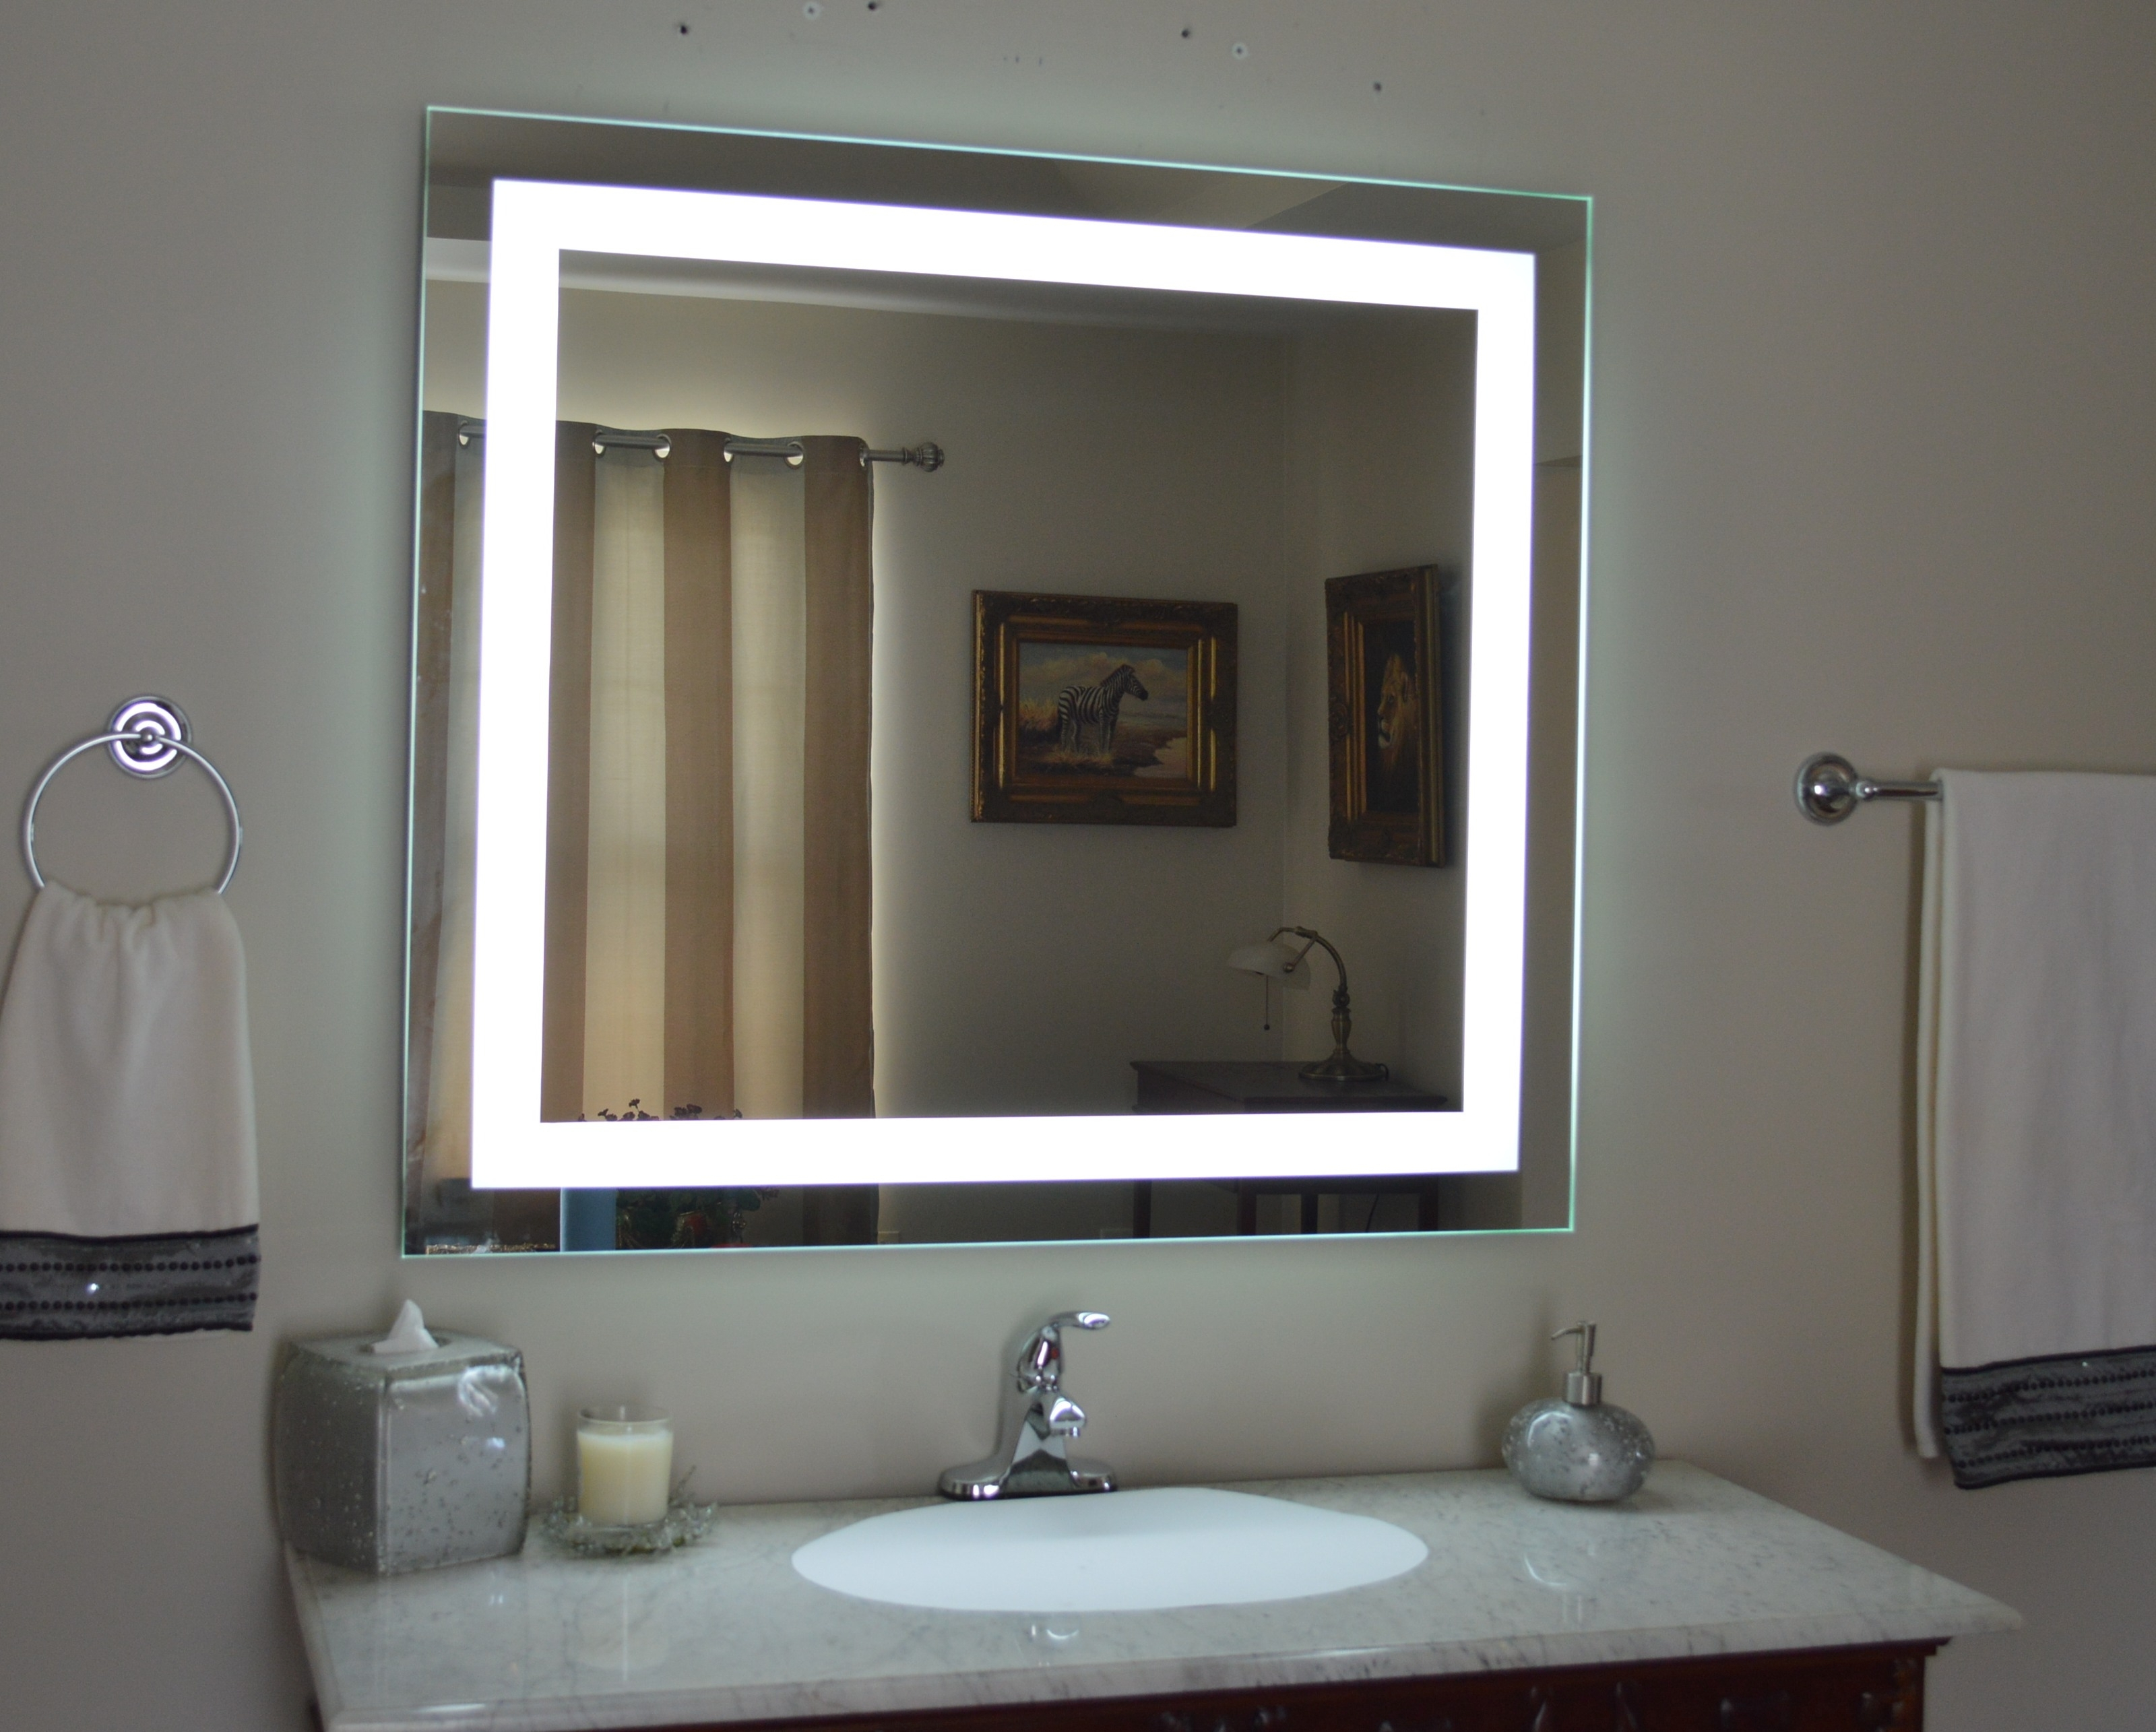 Permalink to Wall Mounted Illuminated Makeup Mirror